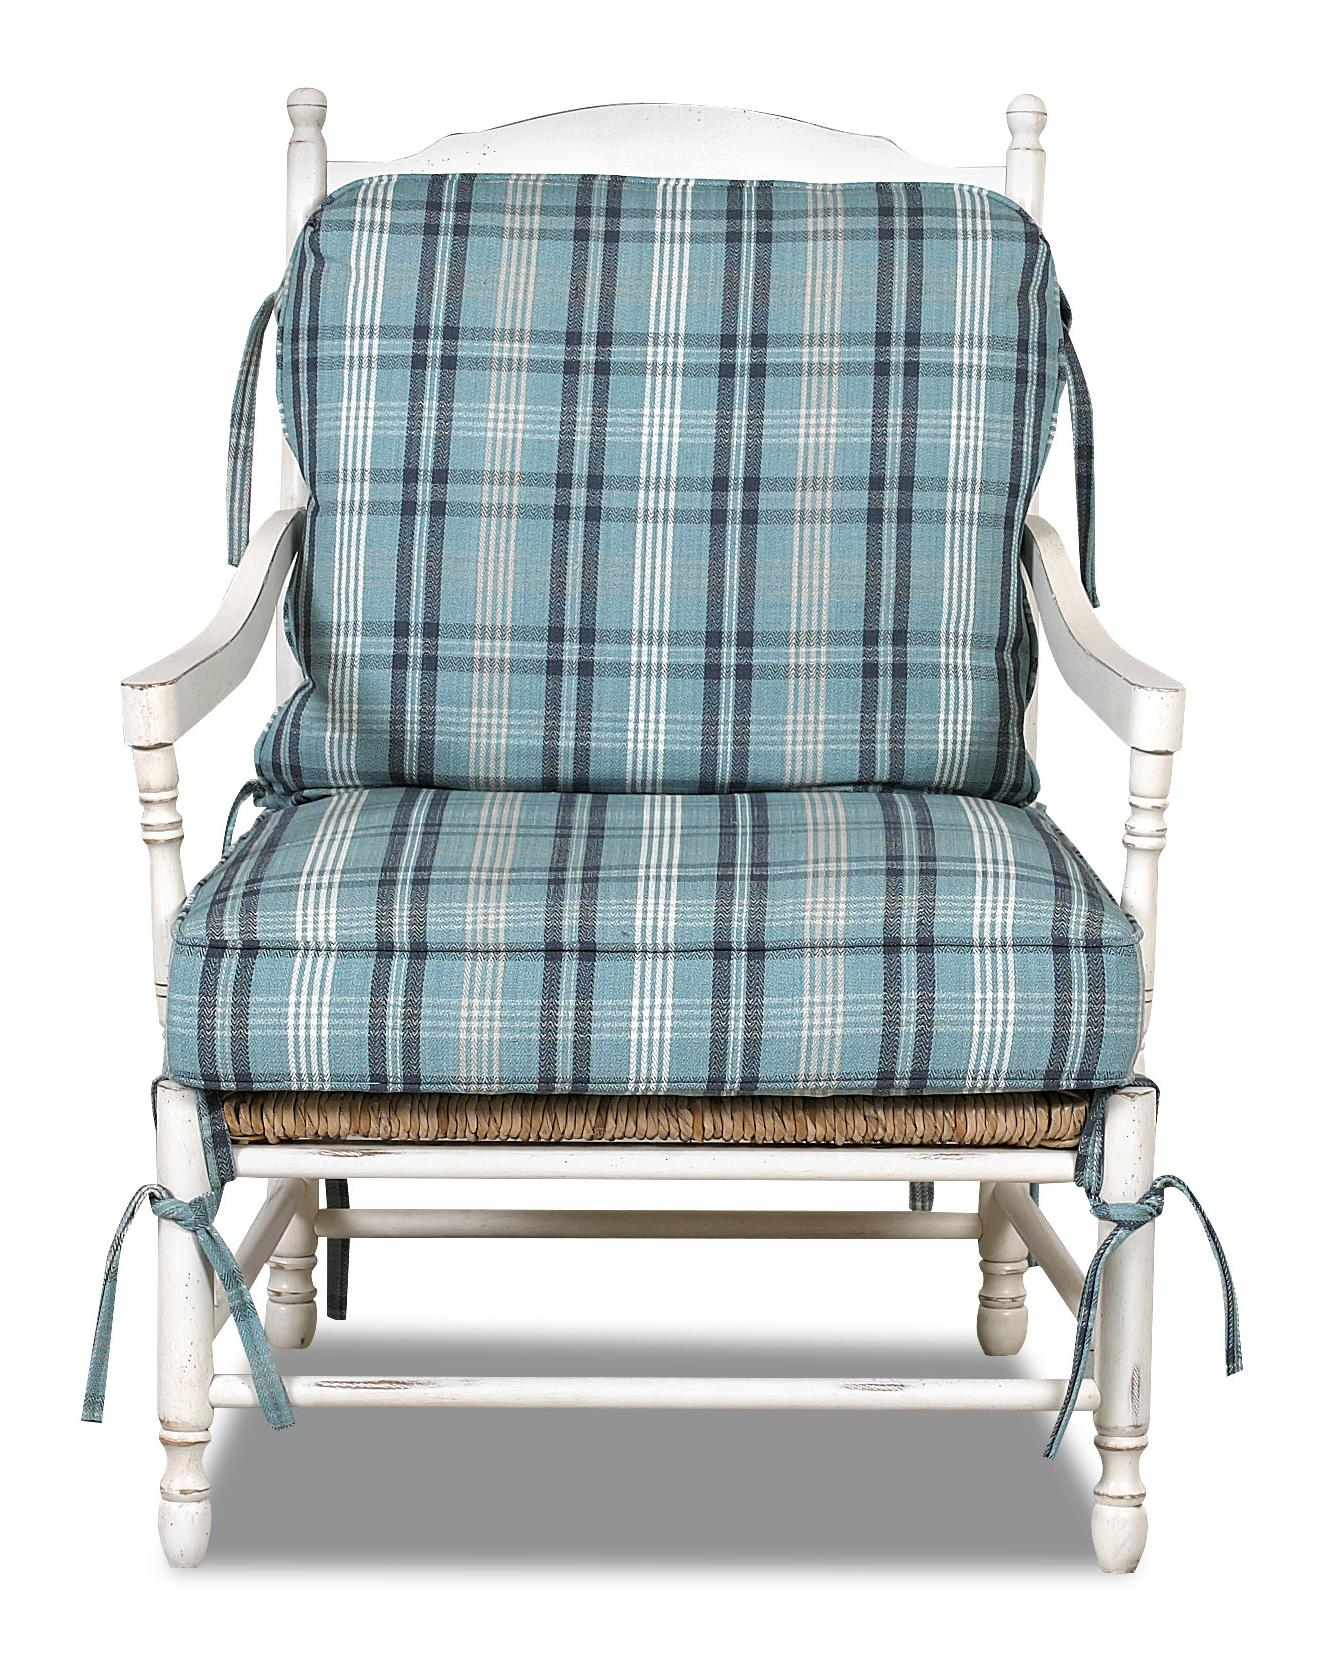 Klaussner Chairs and Accents Homespun Accent Chair  - Item Number: D350 OC